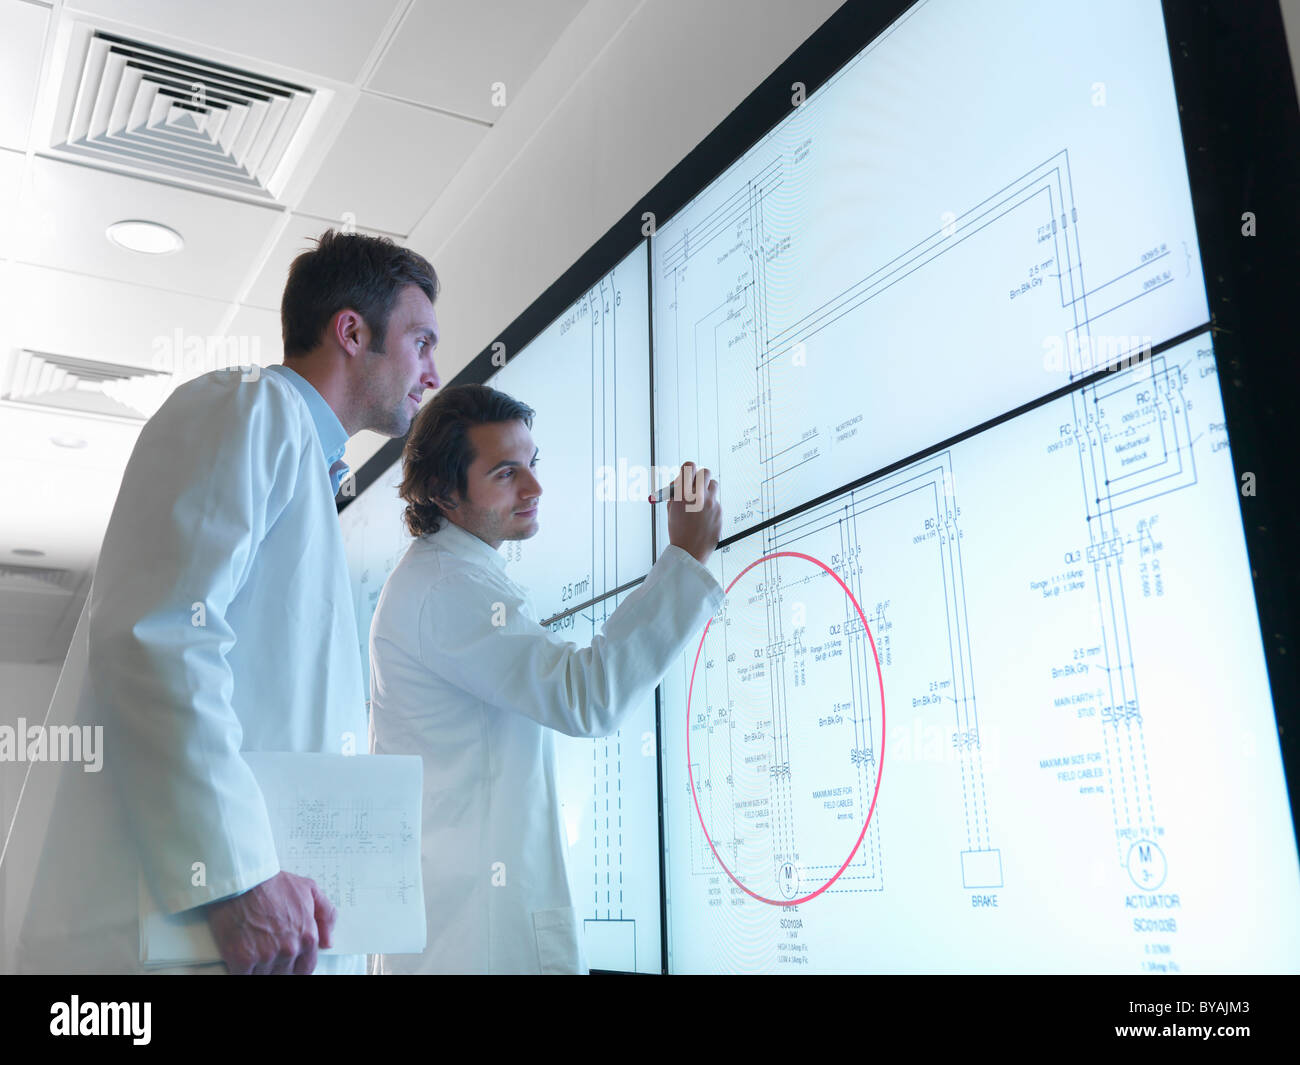 Scientists with diagrams on screen - Stock Image